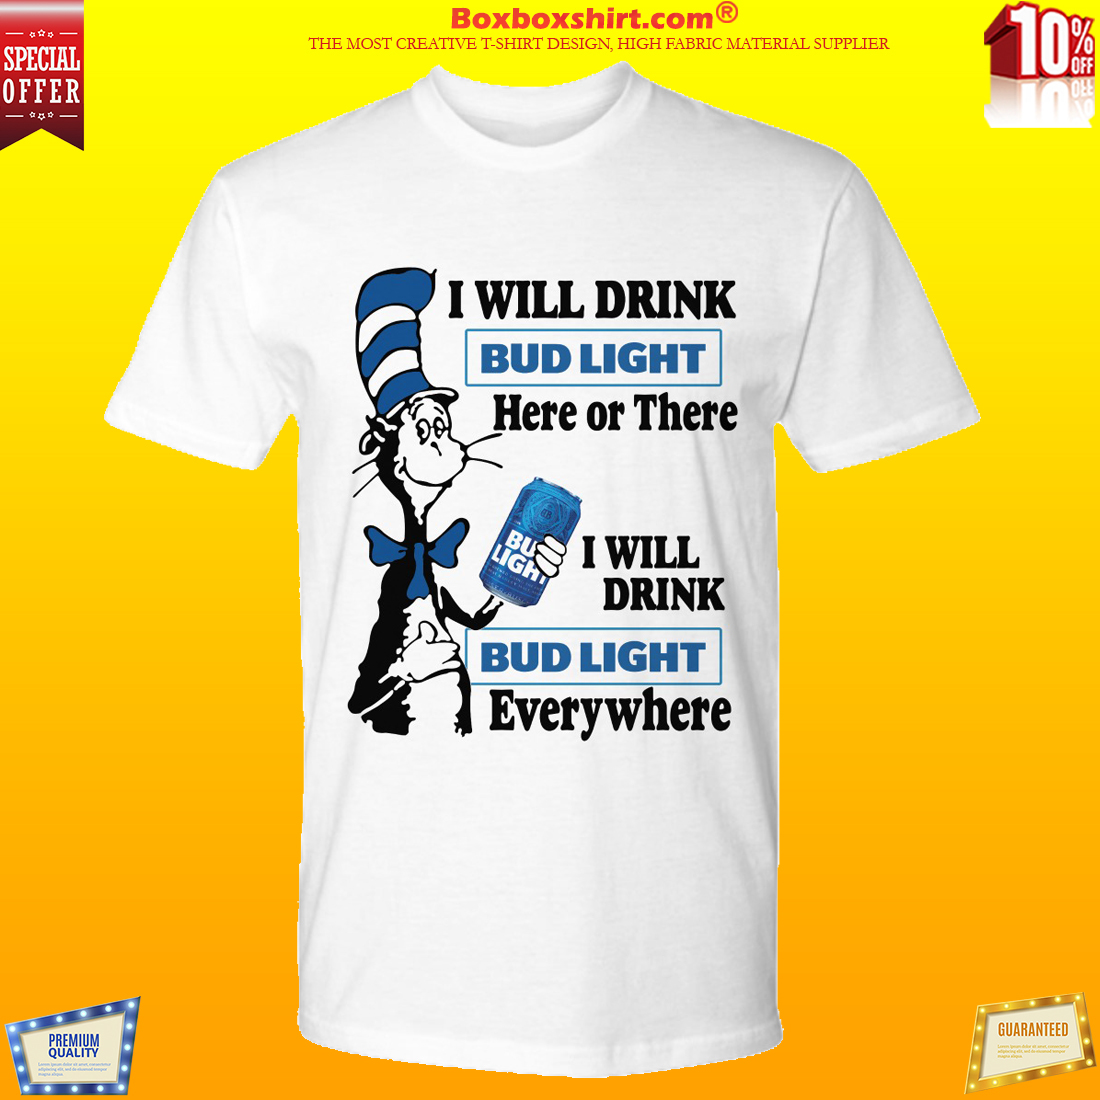 The cat in the hat holding Bud Light shirt